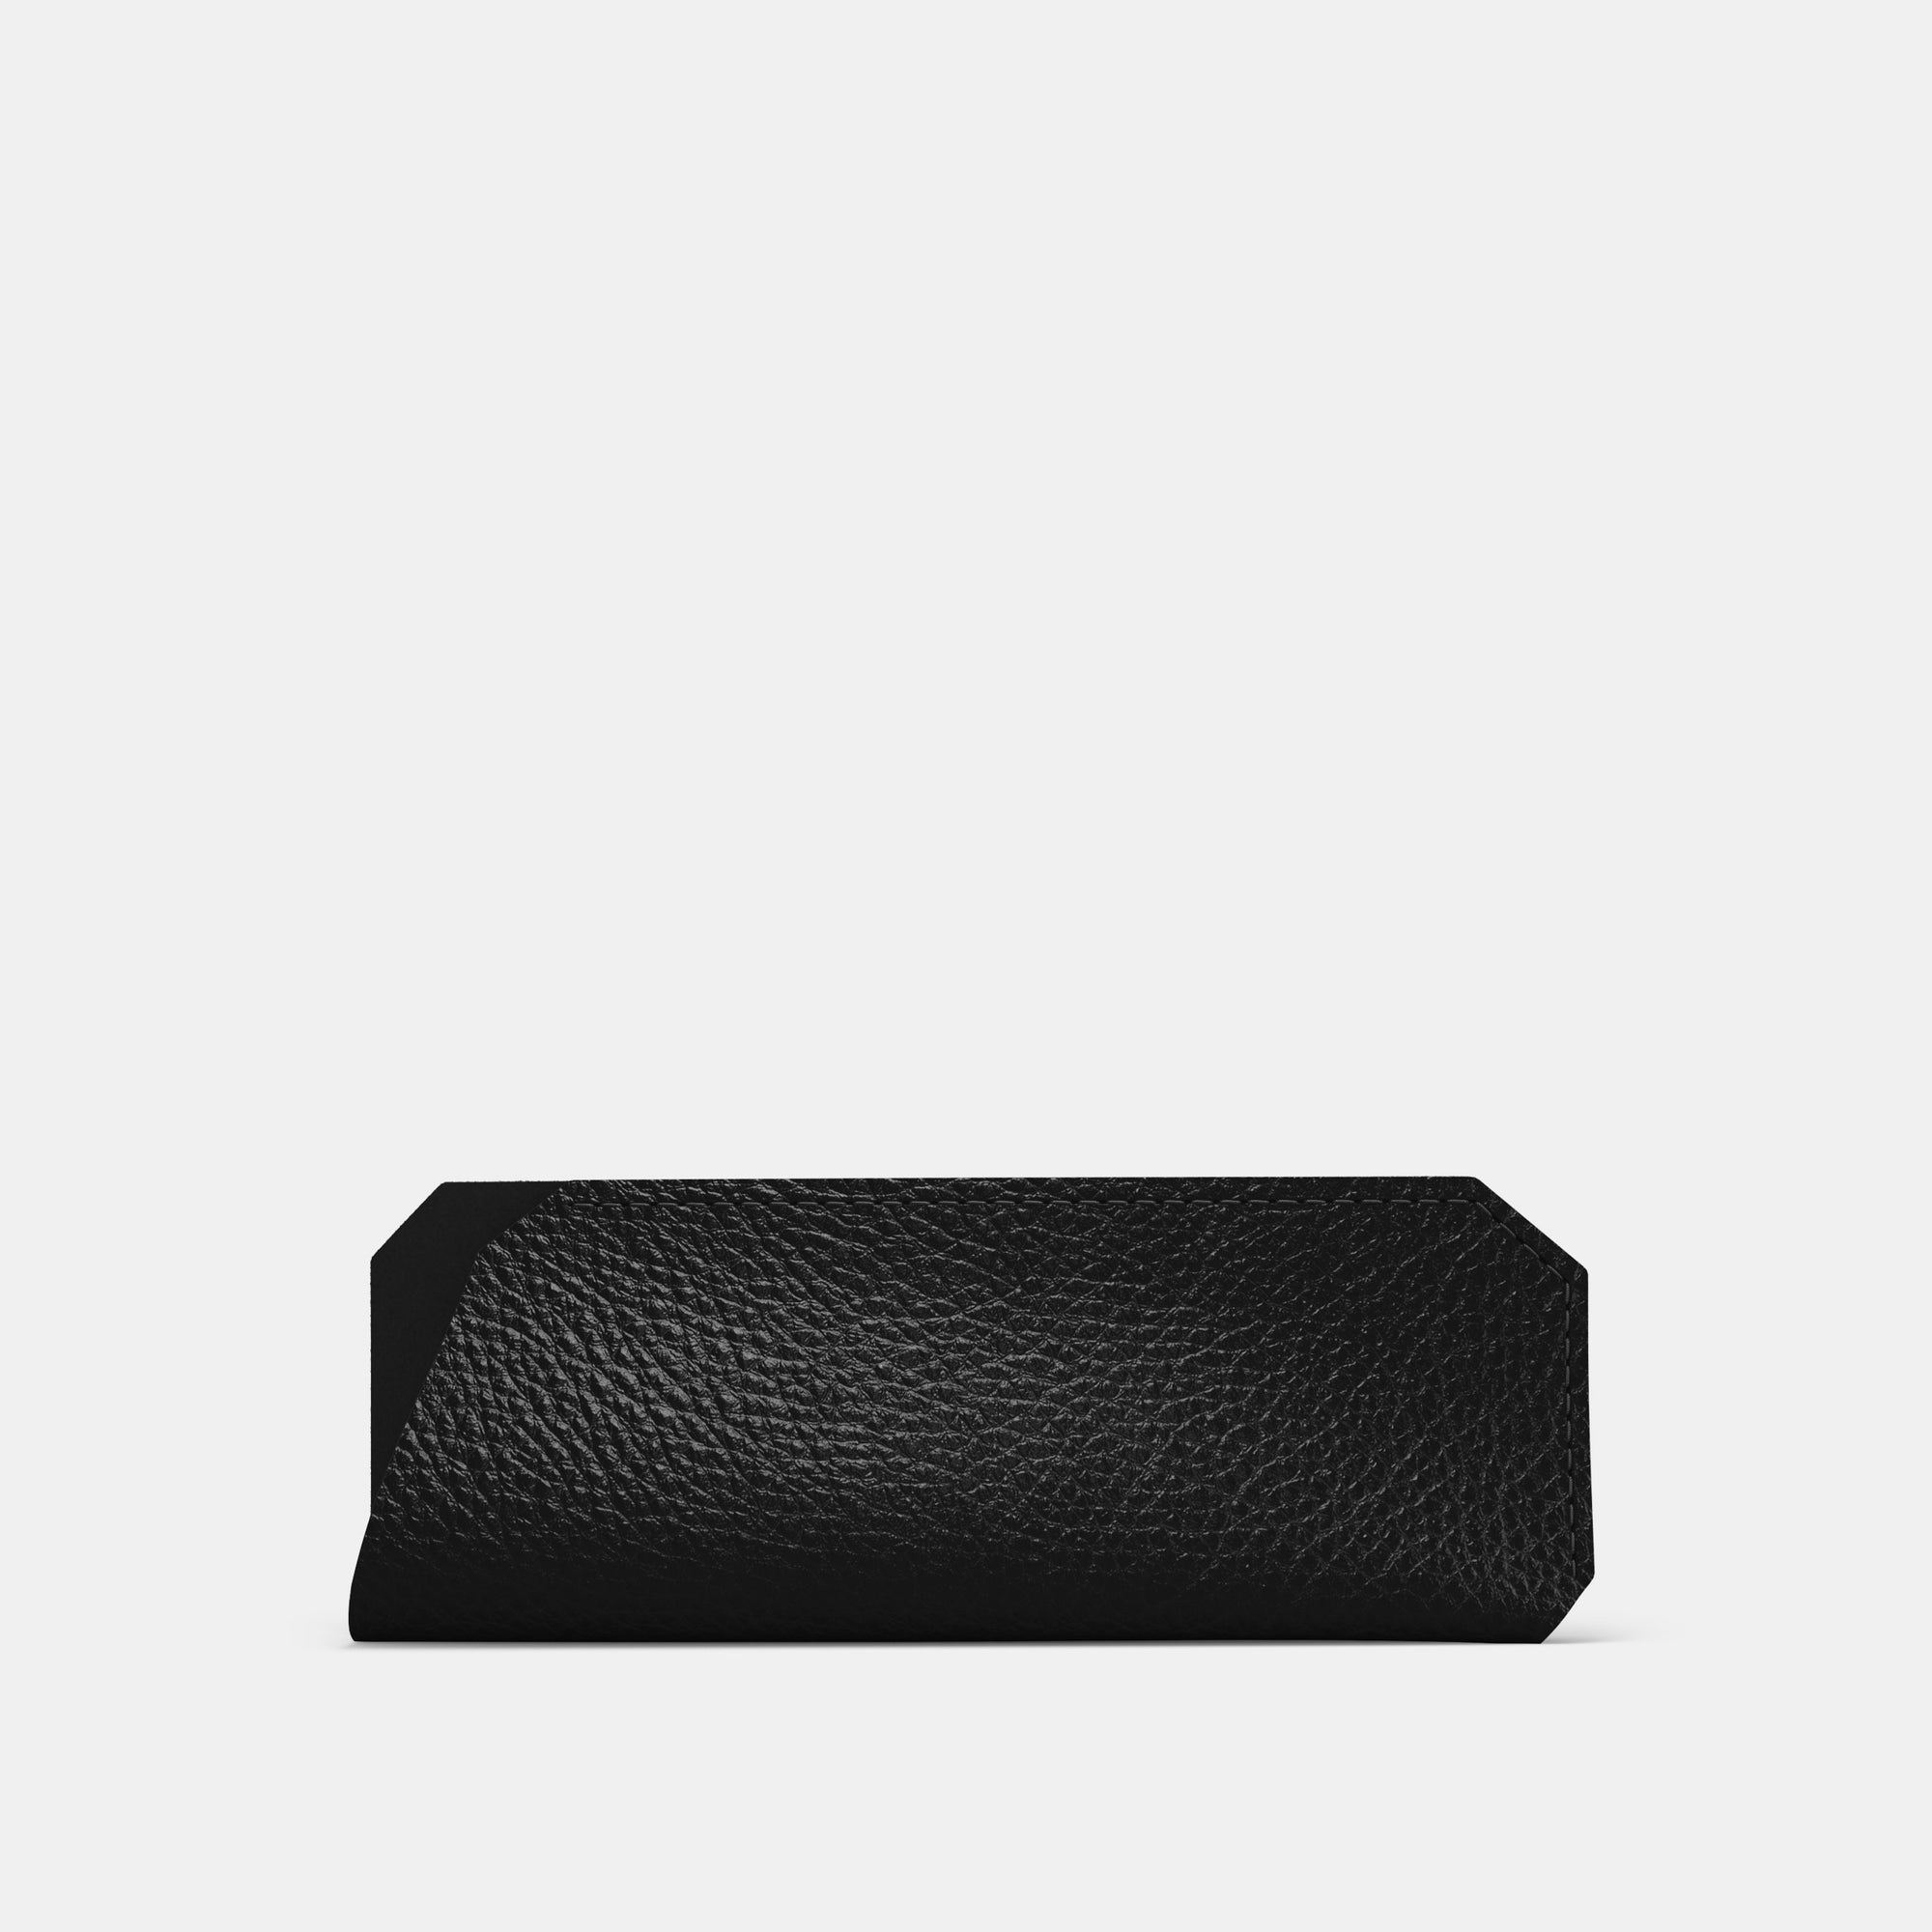 Glasses case - RYAN London